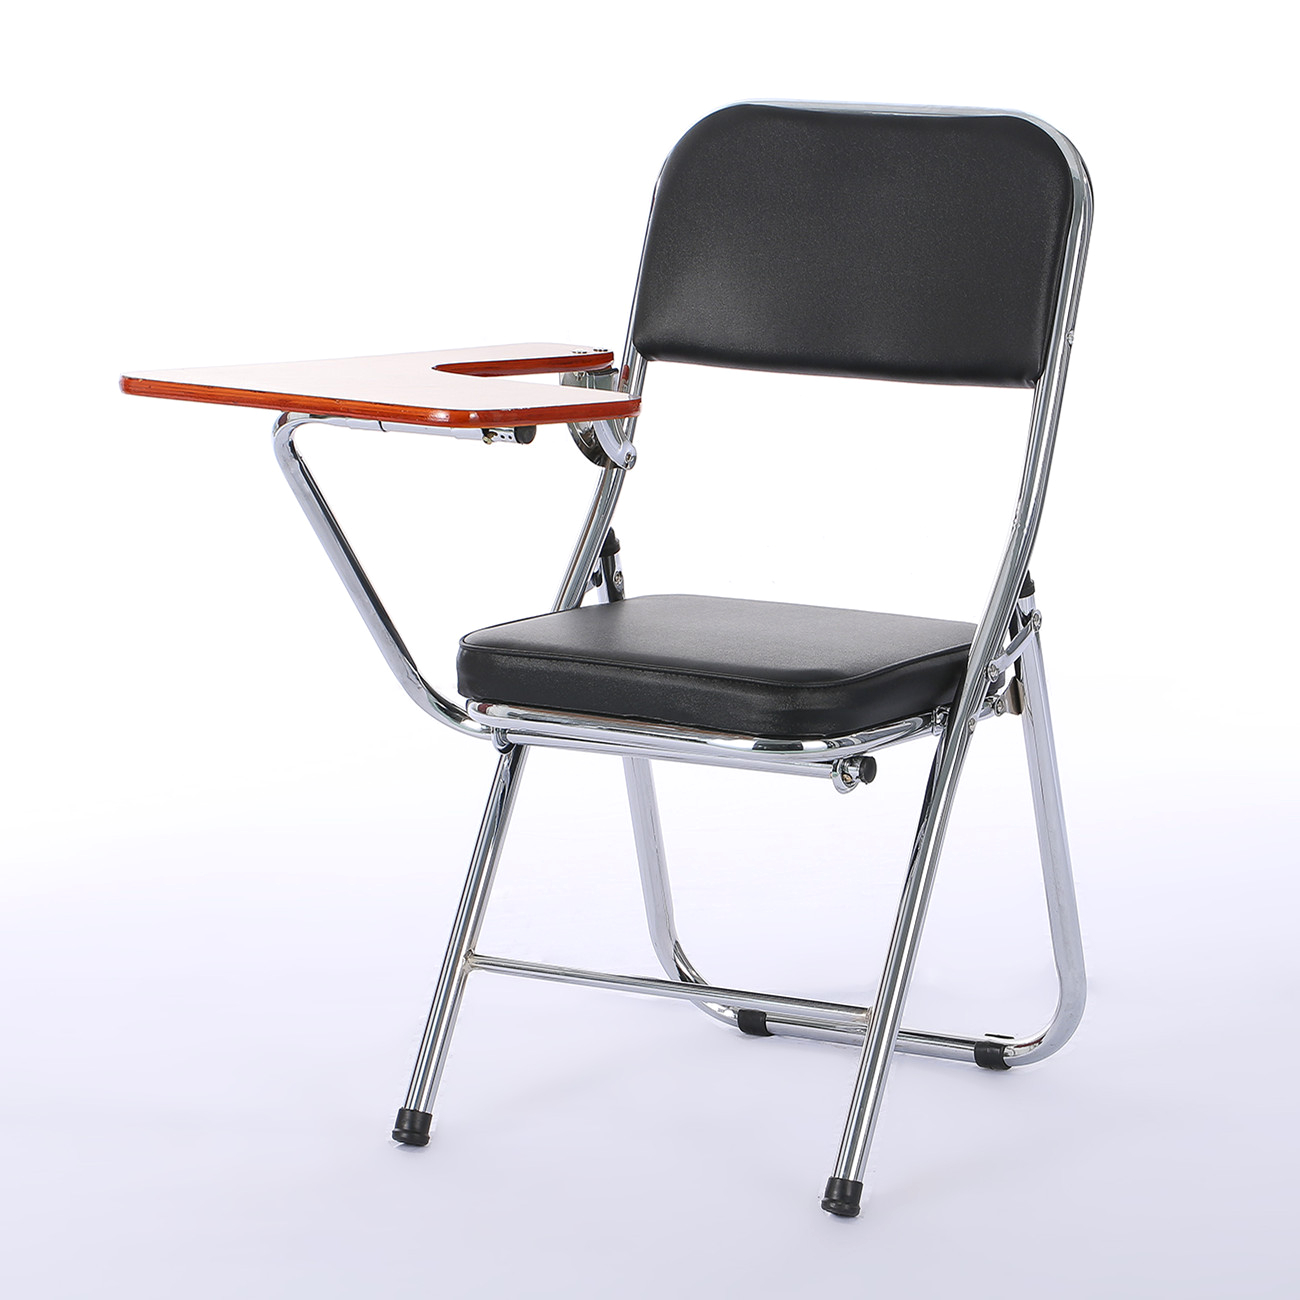 folding chair with desk director covers in stores modern fashion staff training writing board